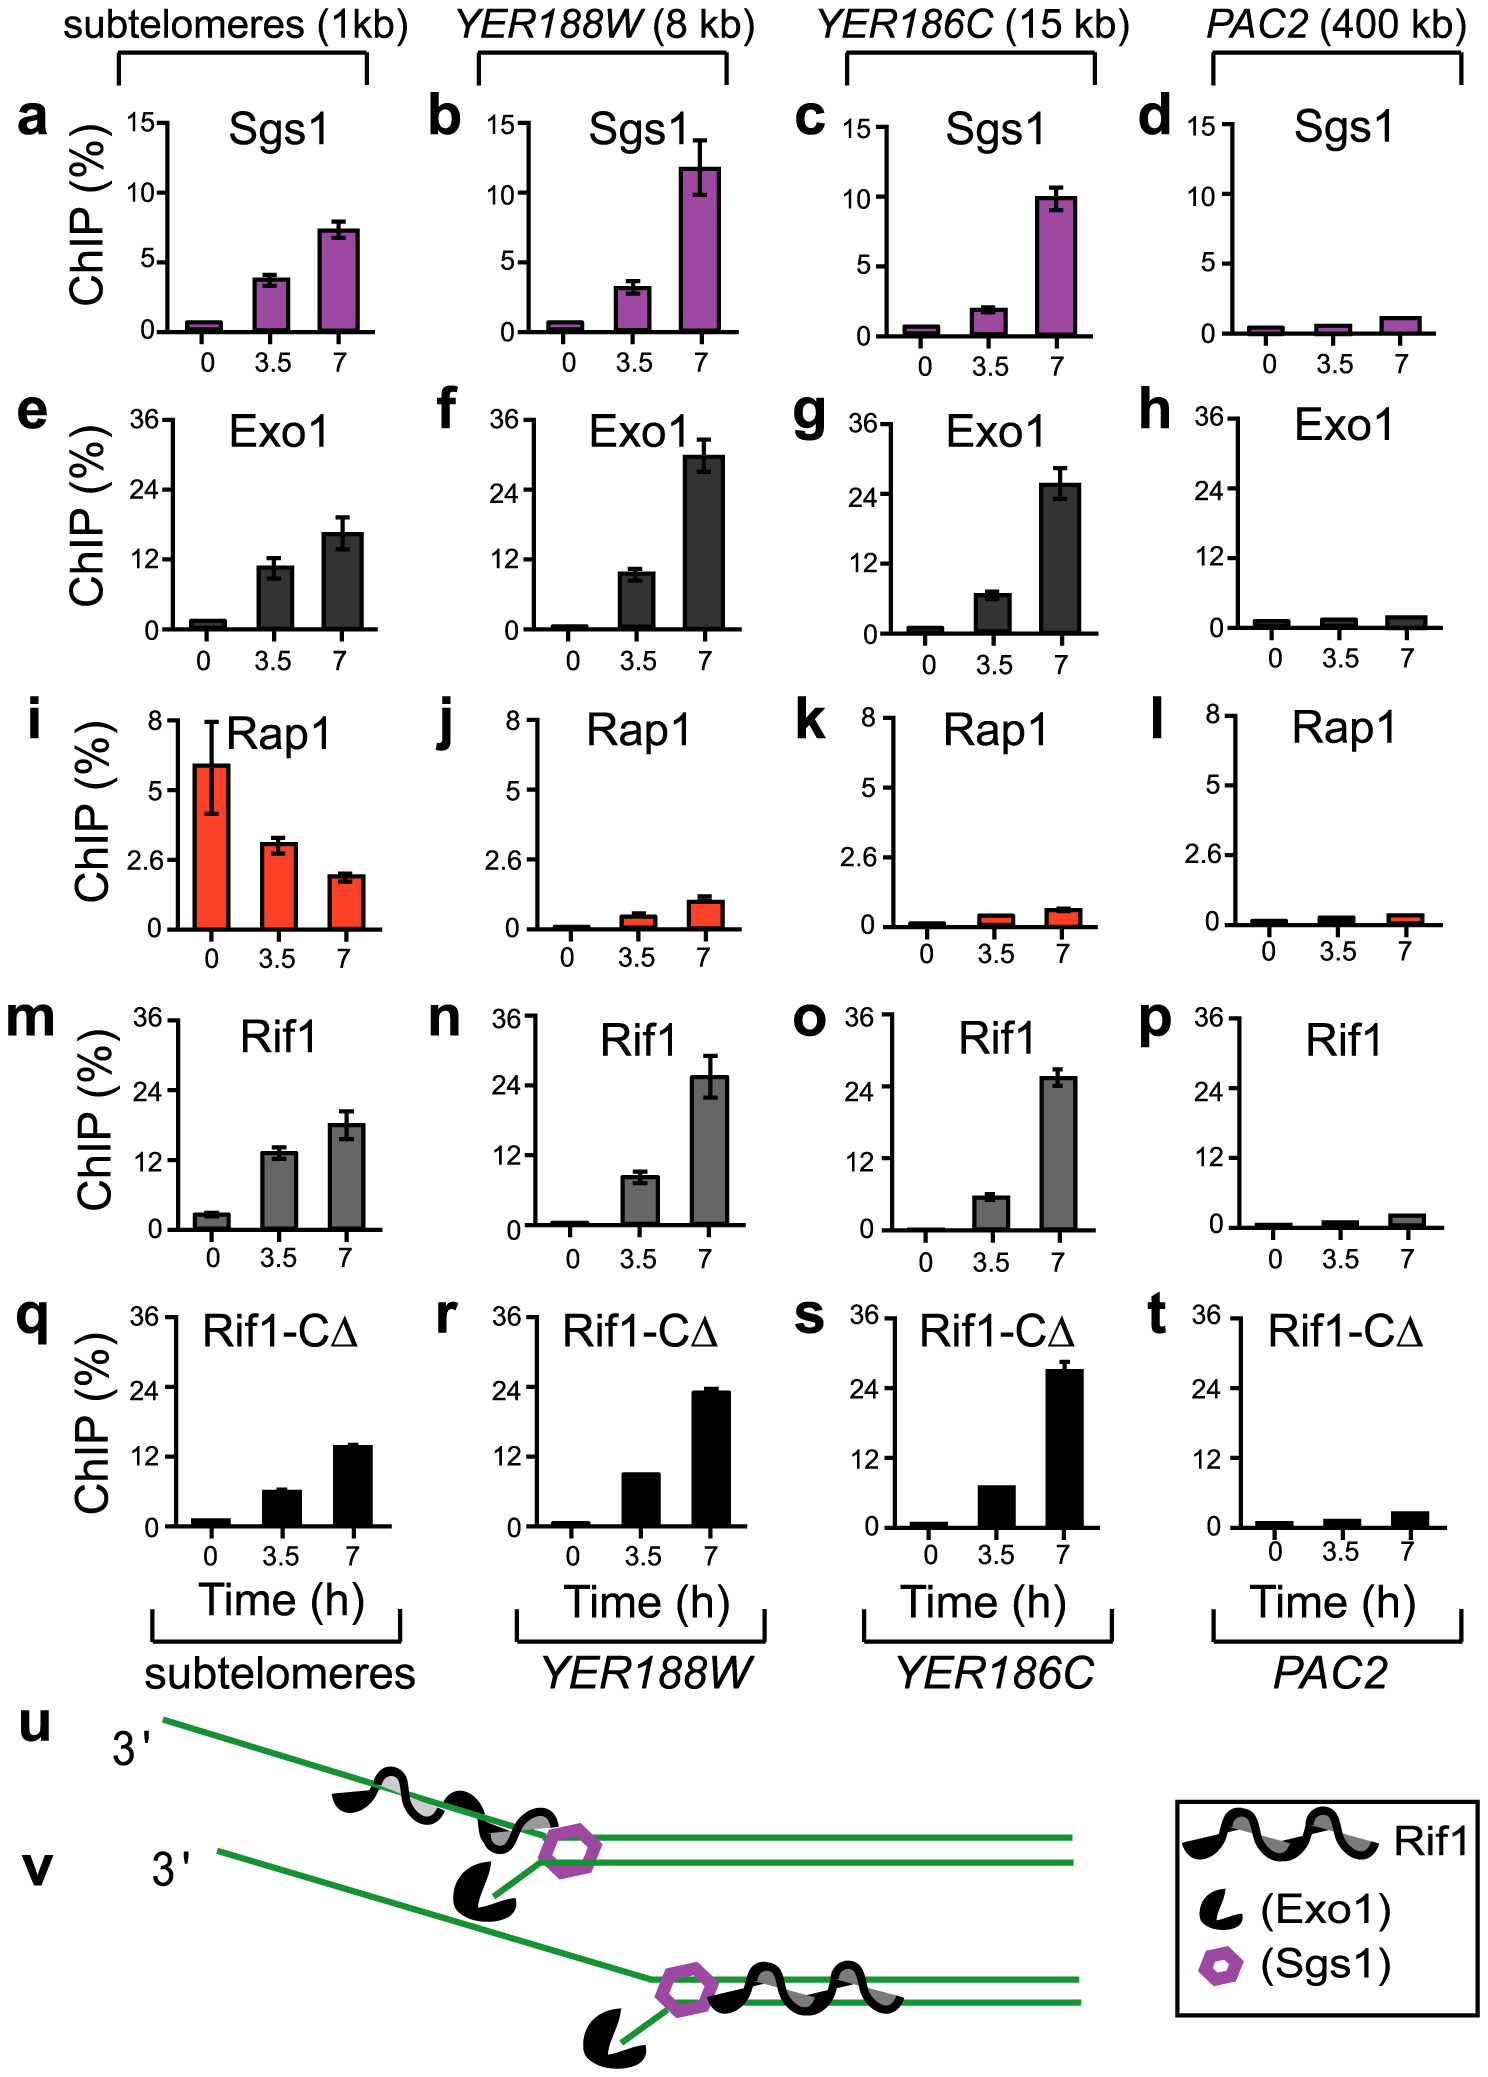 The association of Sgs1, Exo1, Rap1, Rif1, and Rif1-C<i>Δ</i> with different chromosome regions during telomere dysfunction.